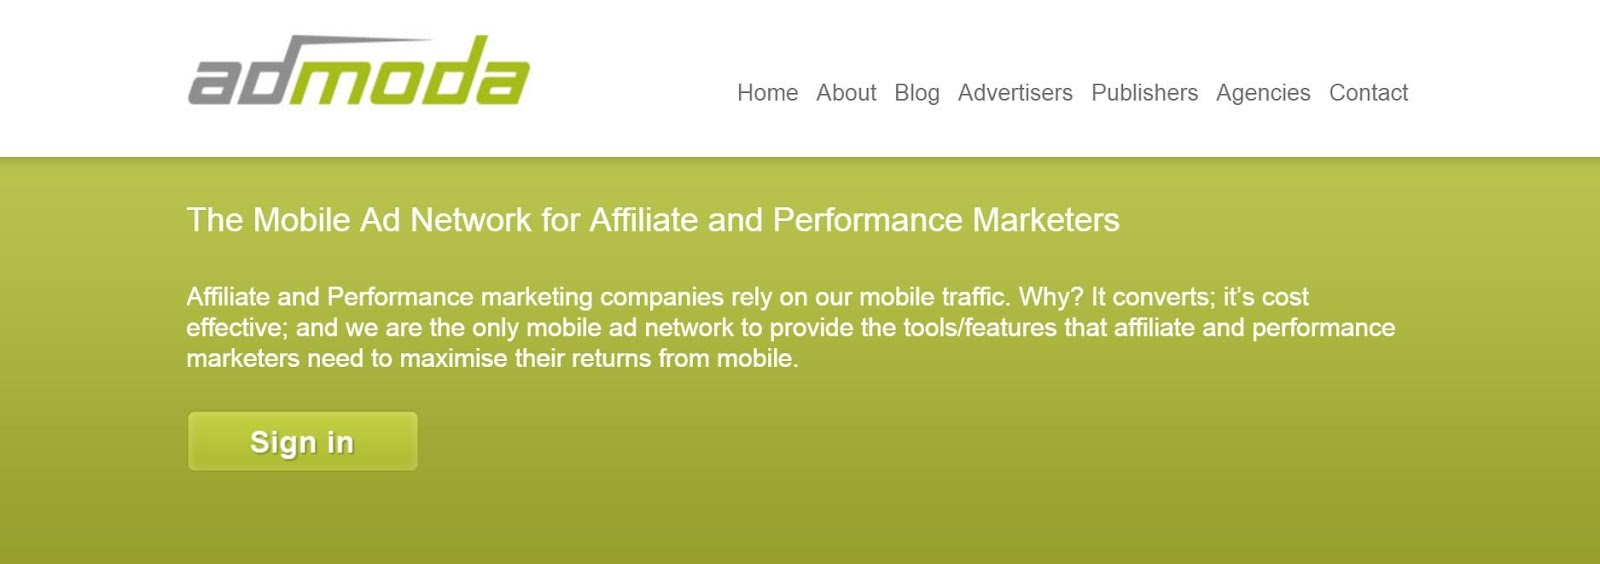 Awesome Advertising Networks For Mobile Entrepreneur